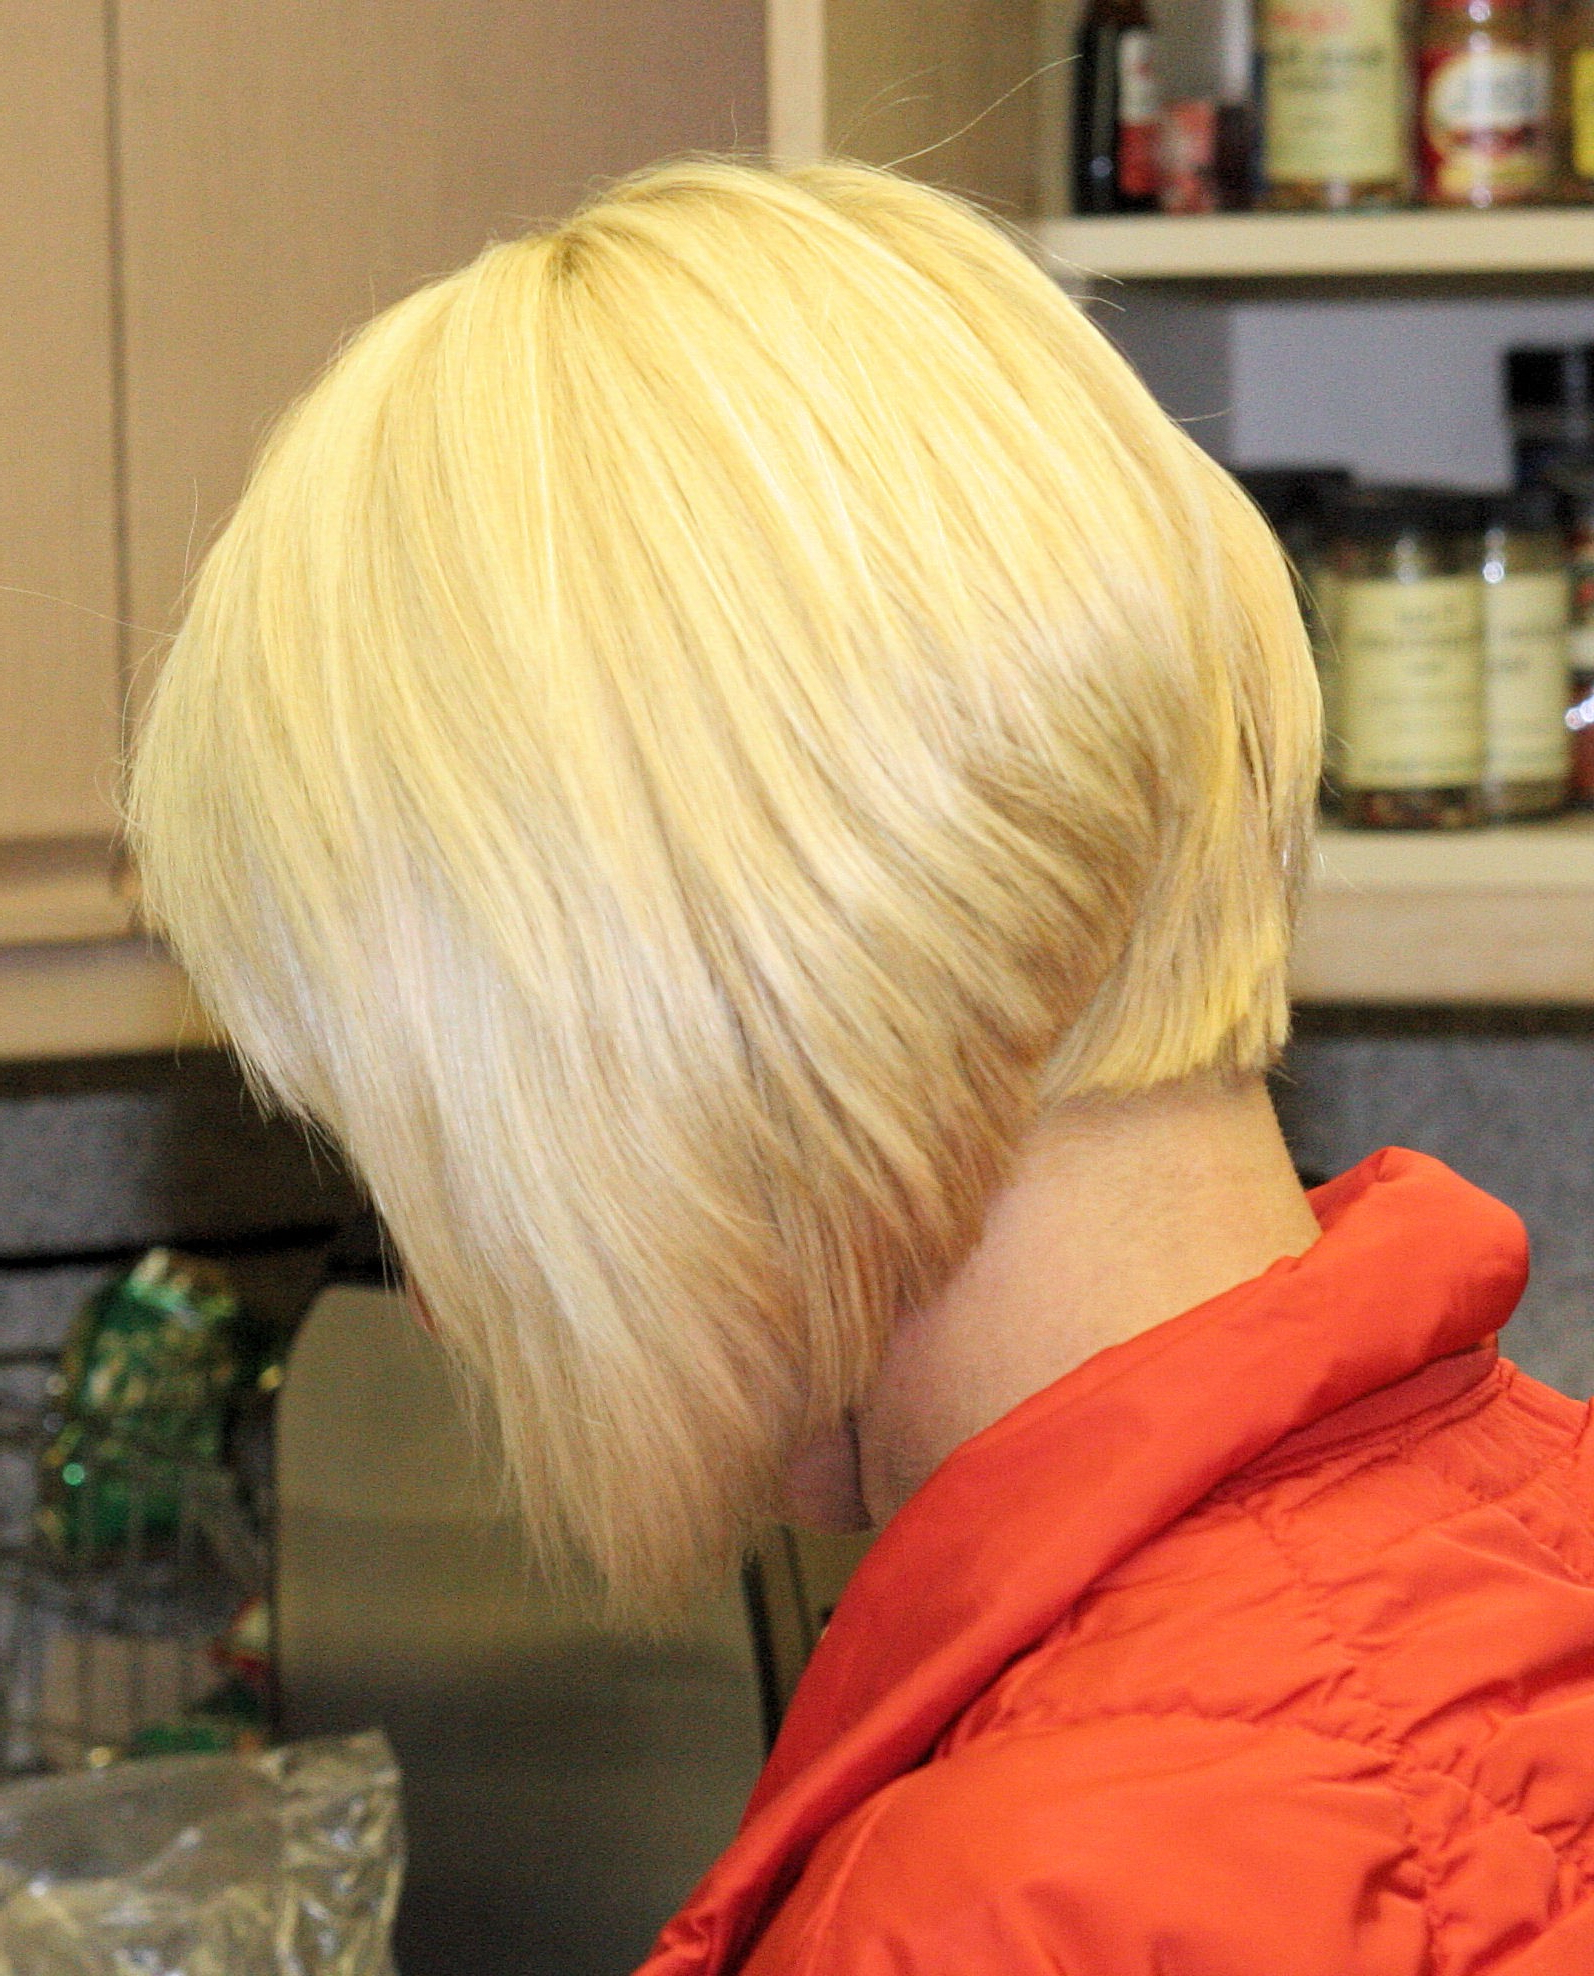 Bob Style Hair Cut For Short Blonde Inverted Bob Haircuts (View 12 of 20)